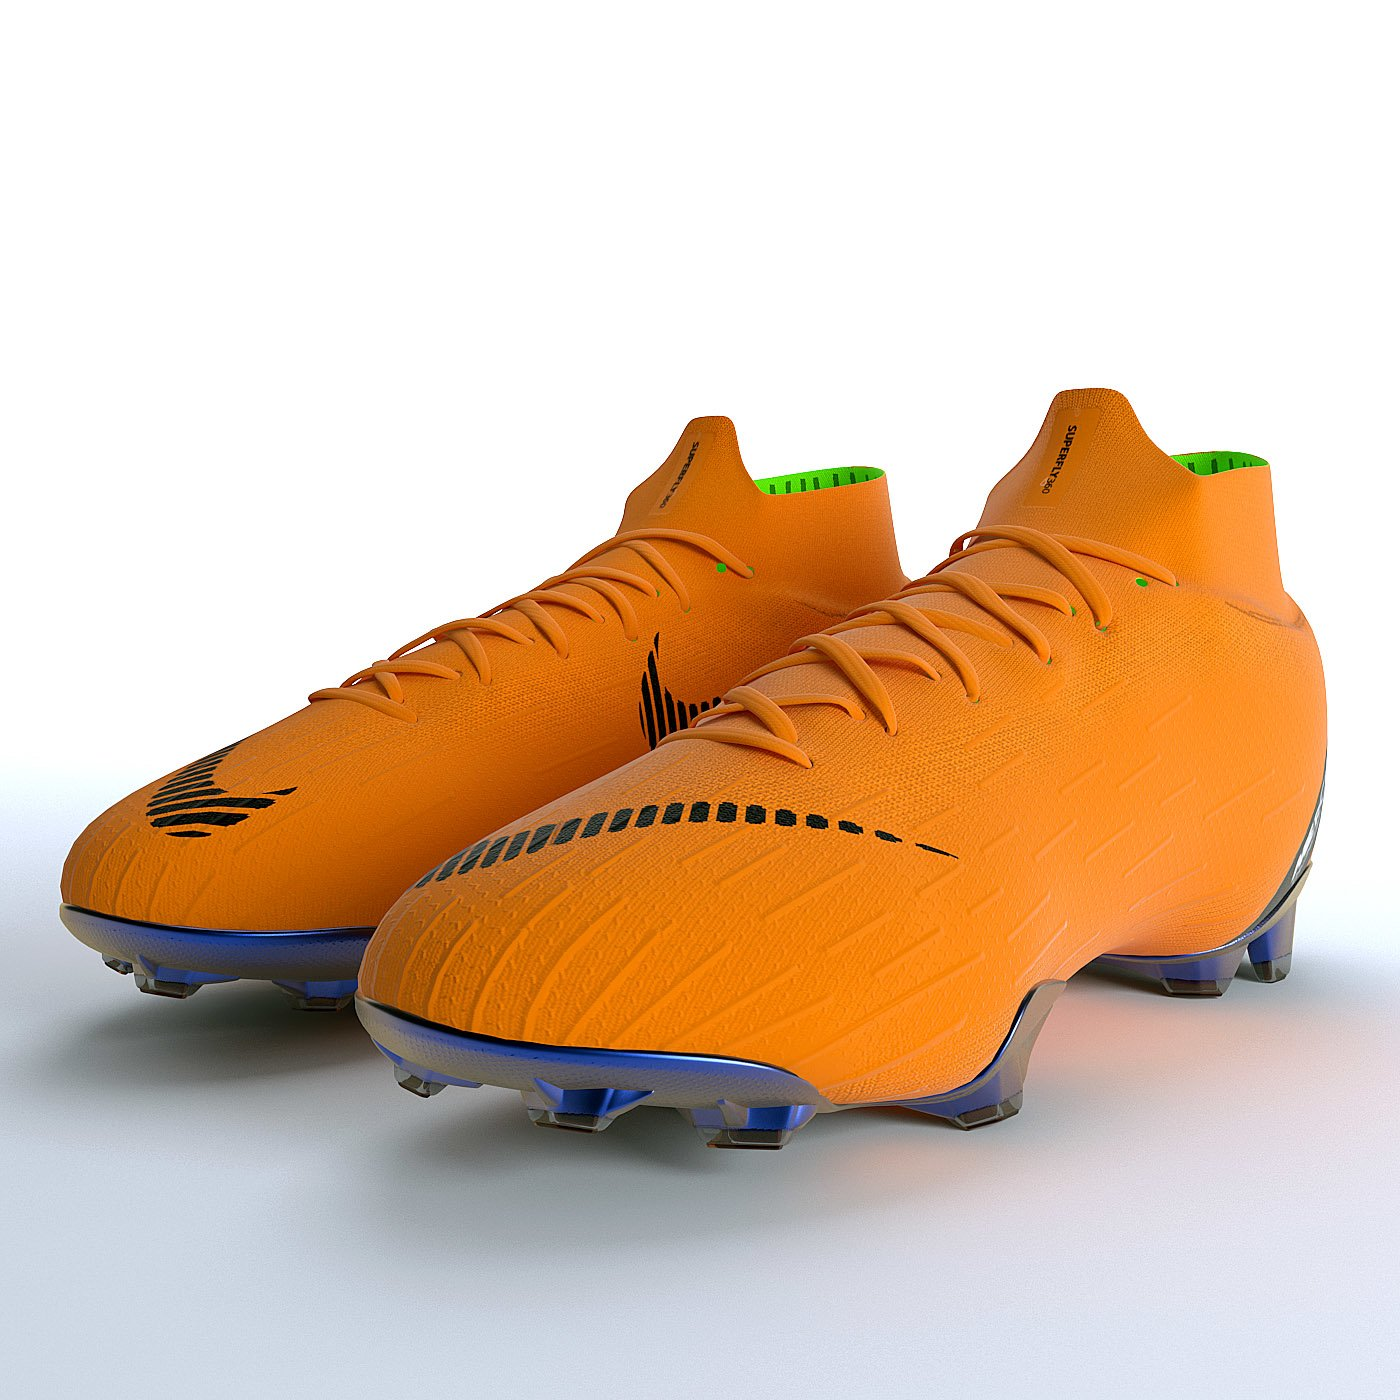 separation shoes ad0bf 82fb7 Nike Mercurial Superfly 360 Elite 3D Model in Clothing 3DExport